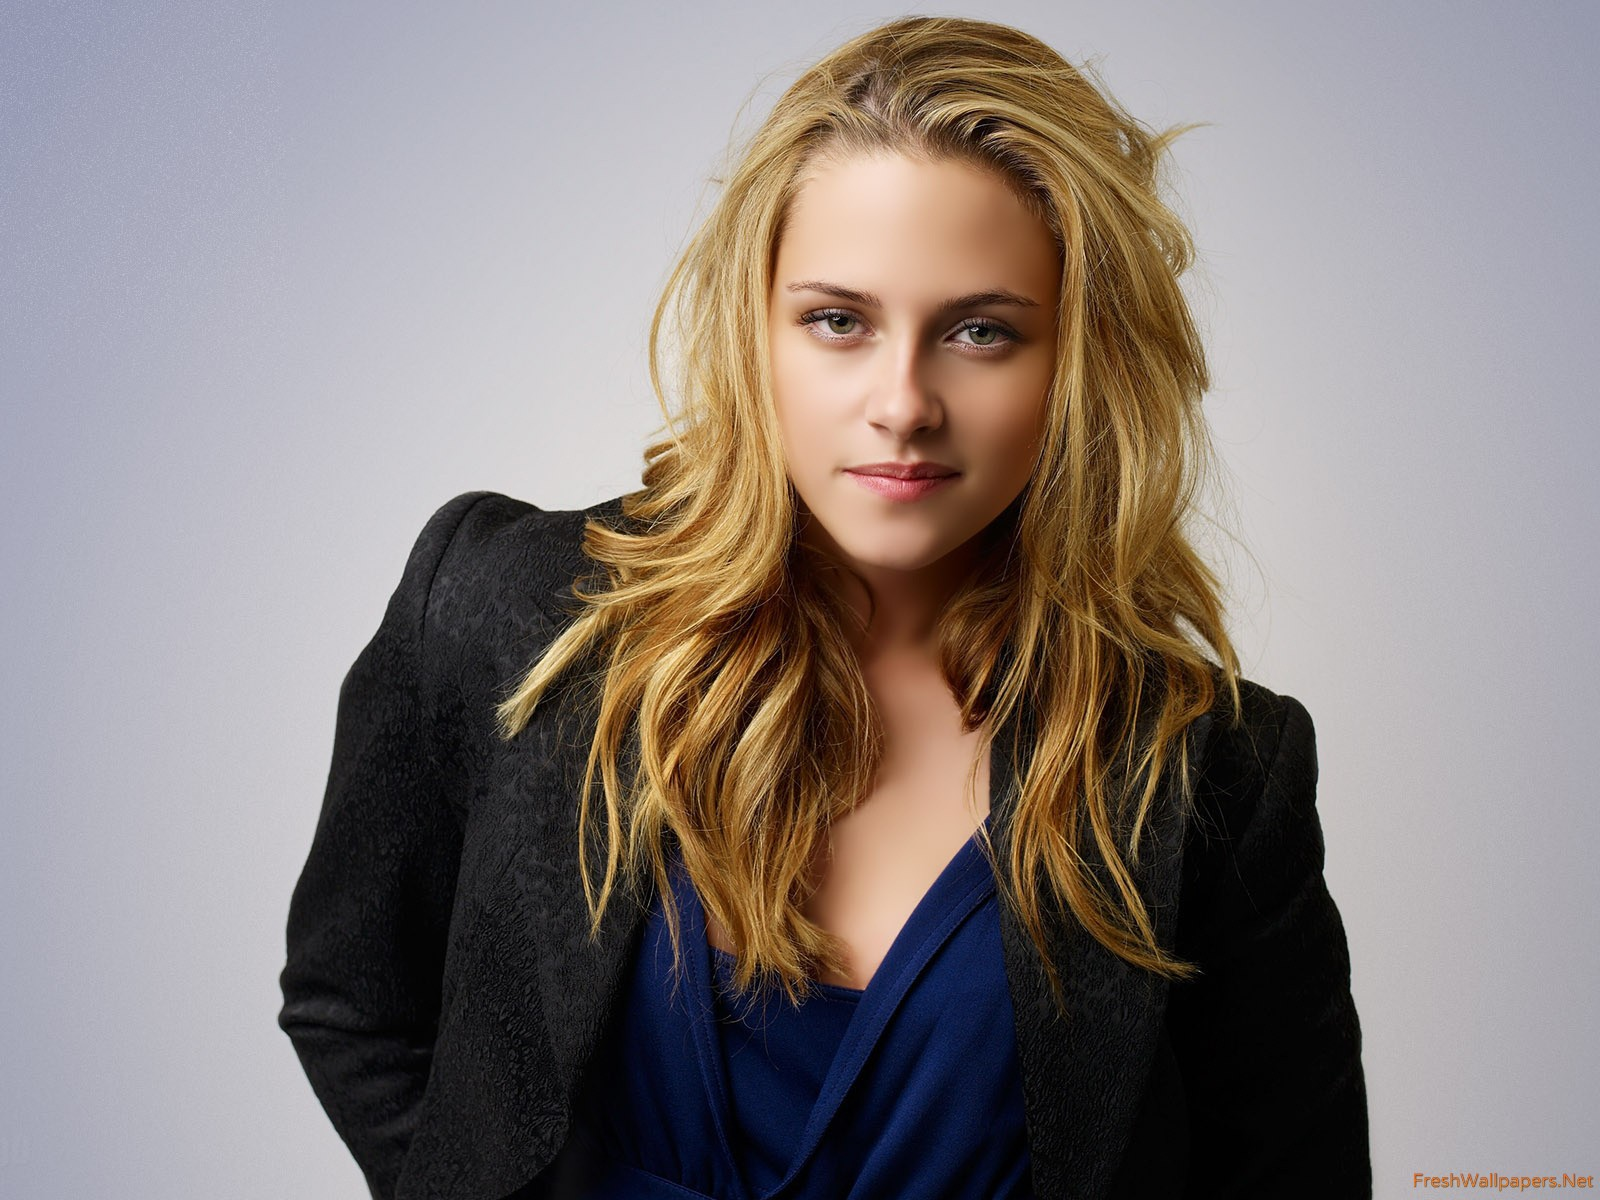 1600x1200 - Riley Keough Wallpapers 12